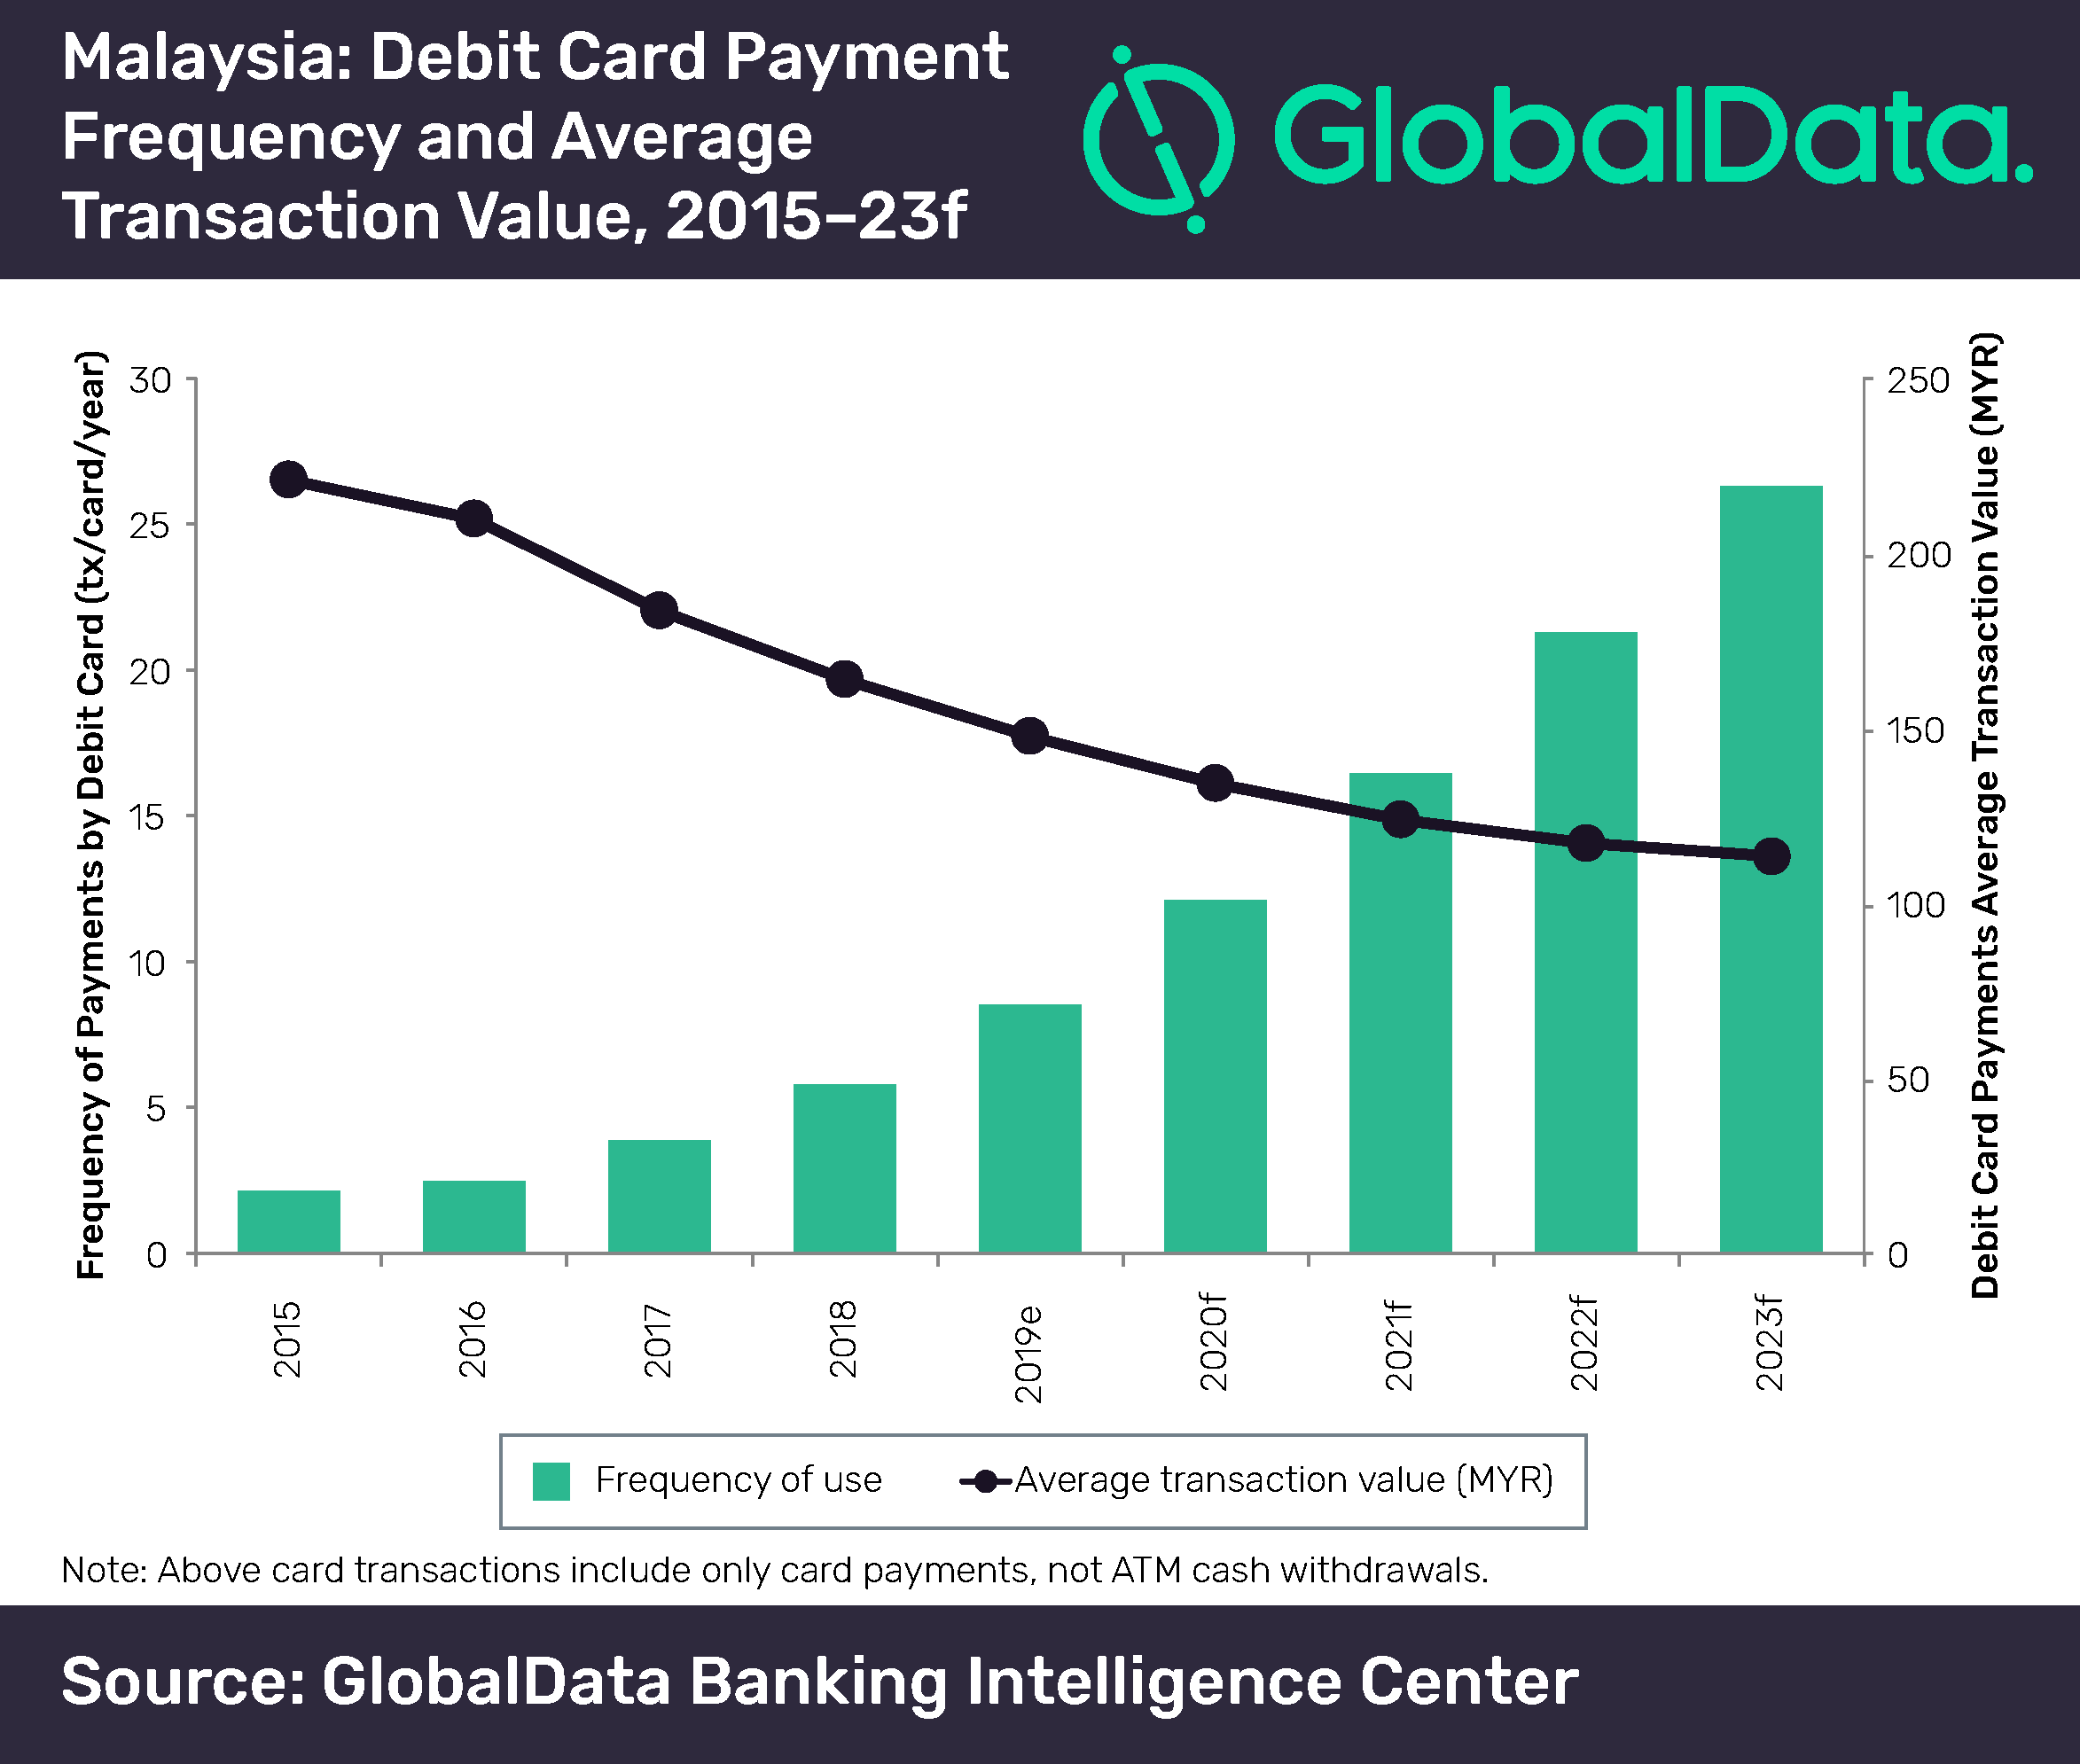 Rise in contactless debit card payments will reduce cash-dependence in Malaysia, says GlobalData